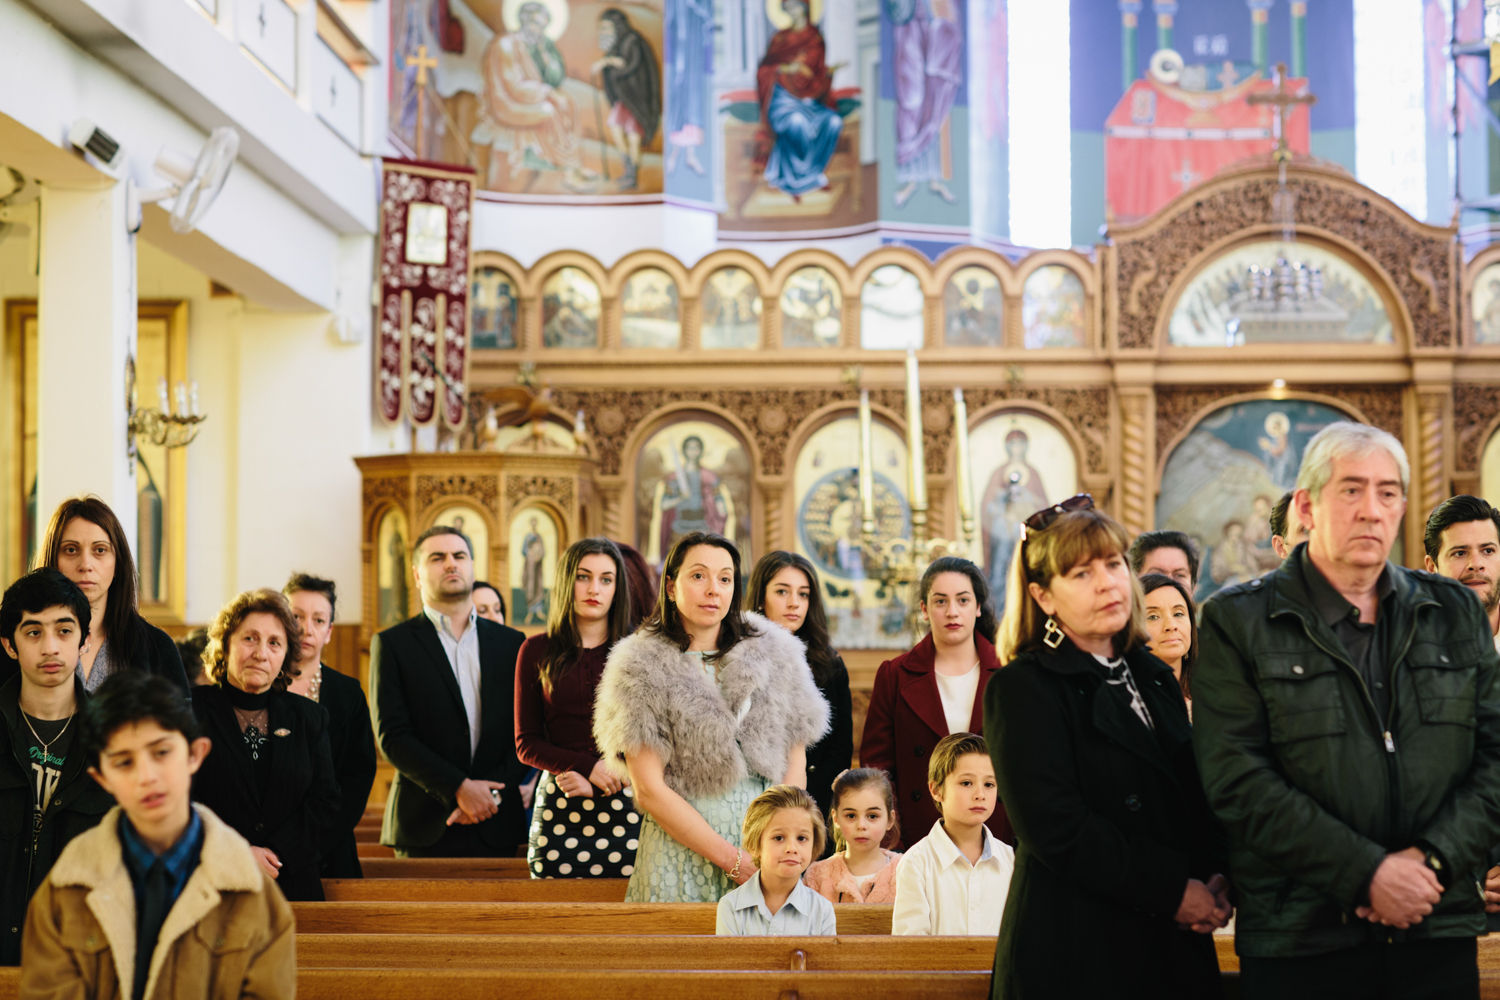 sheridan_nilsson_christening_greek_orthodox_belmore.022.jpeg